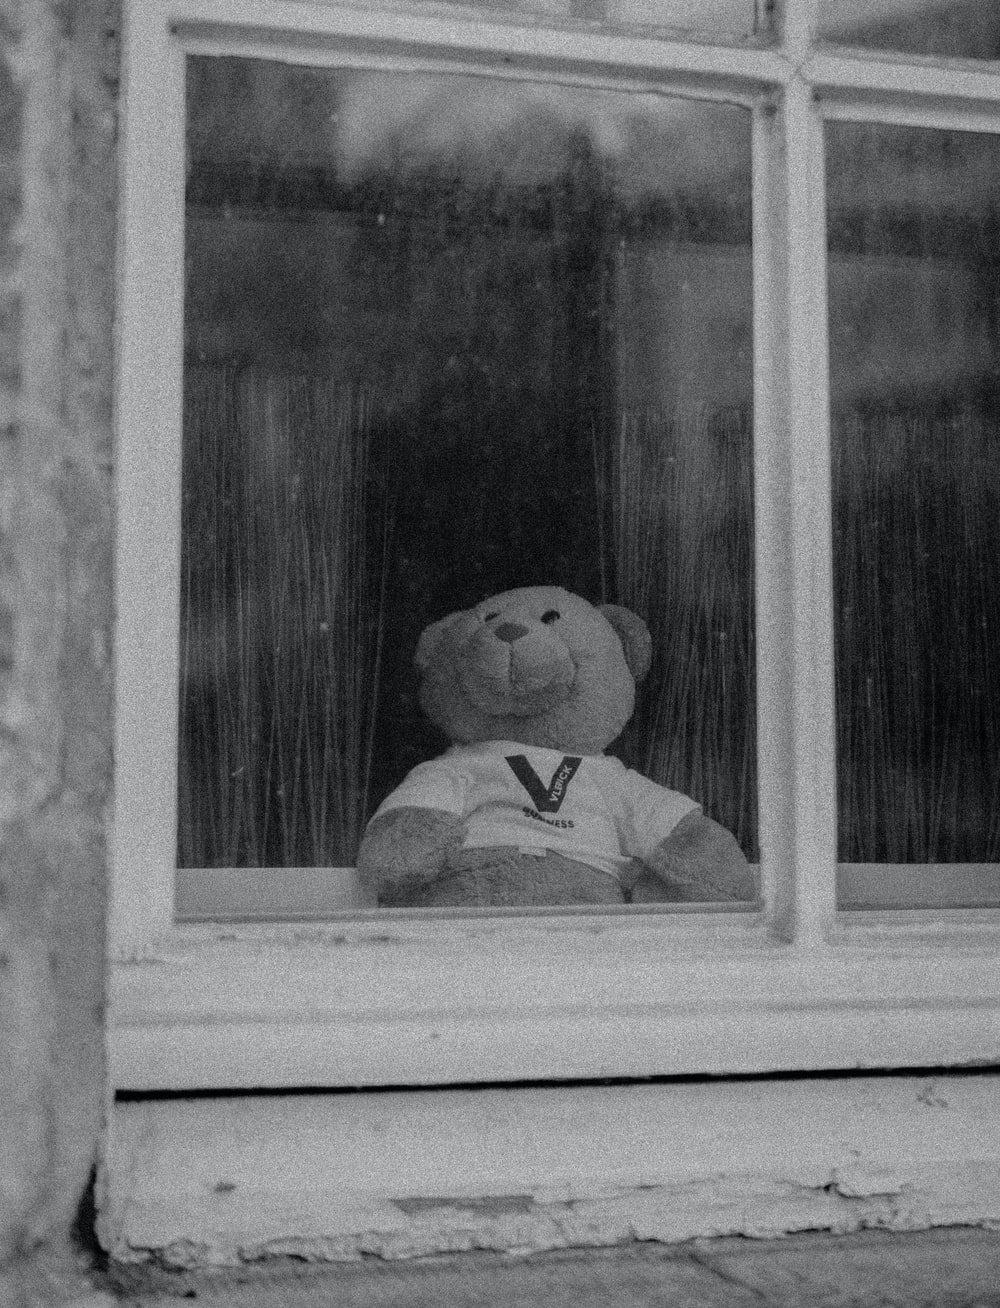 grayscale photo of bear plush toy in window